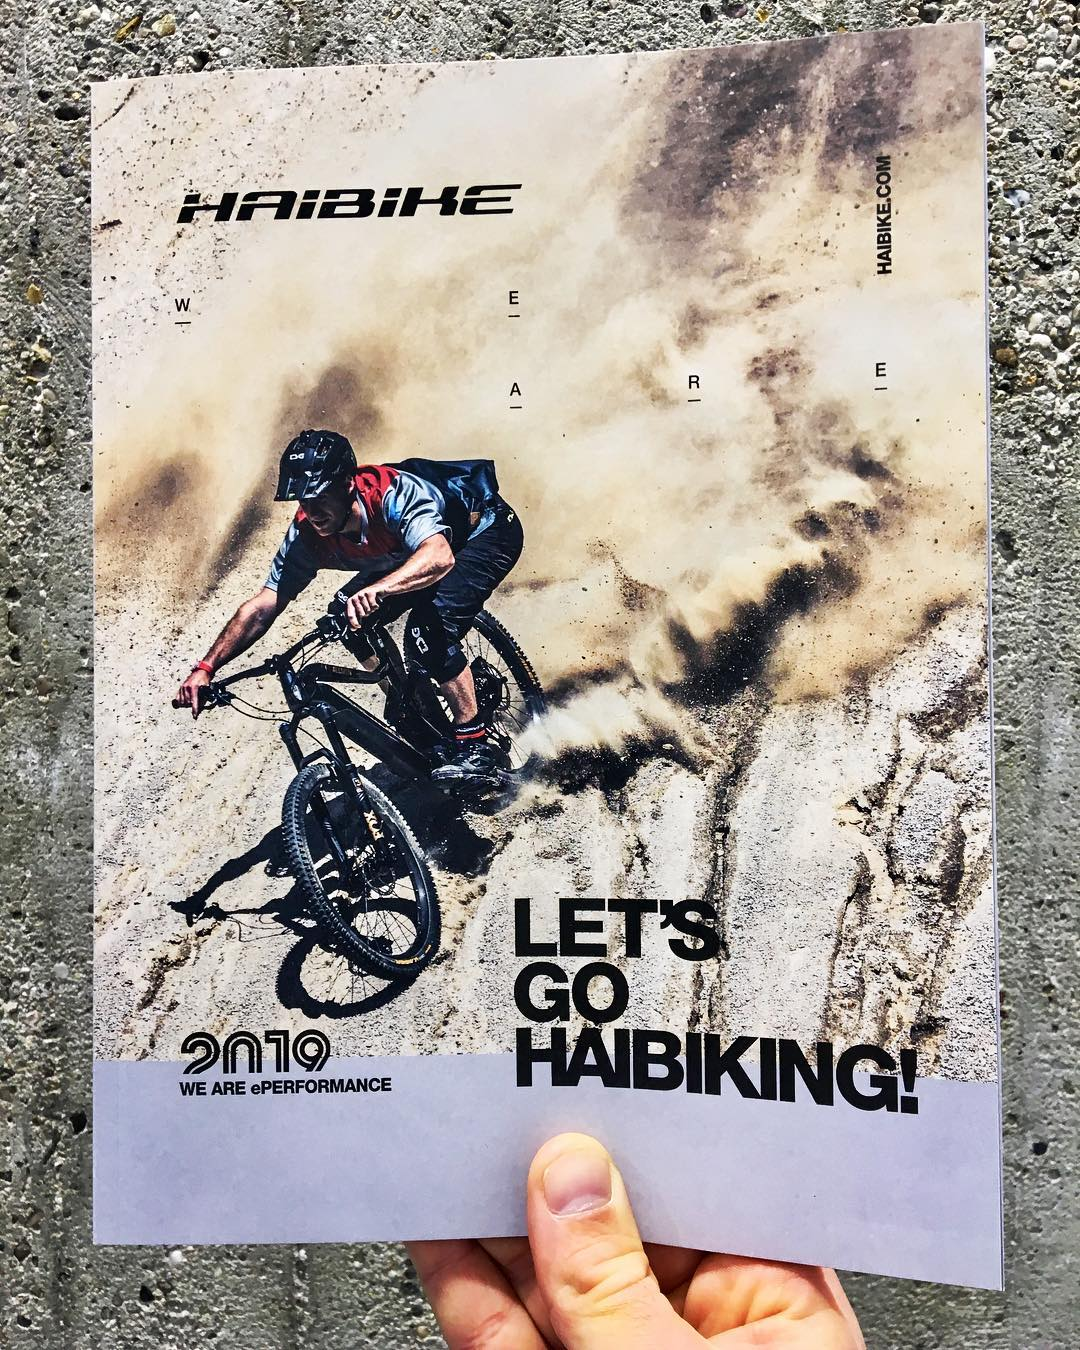 2019 print catalogue for Haibike, designed at HDCM. Let's go haibiking 😜. #haibike #designstudio #communicationdesign #designagency #emtb #ebike #emountainbike #weareeperformance #portfolio